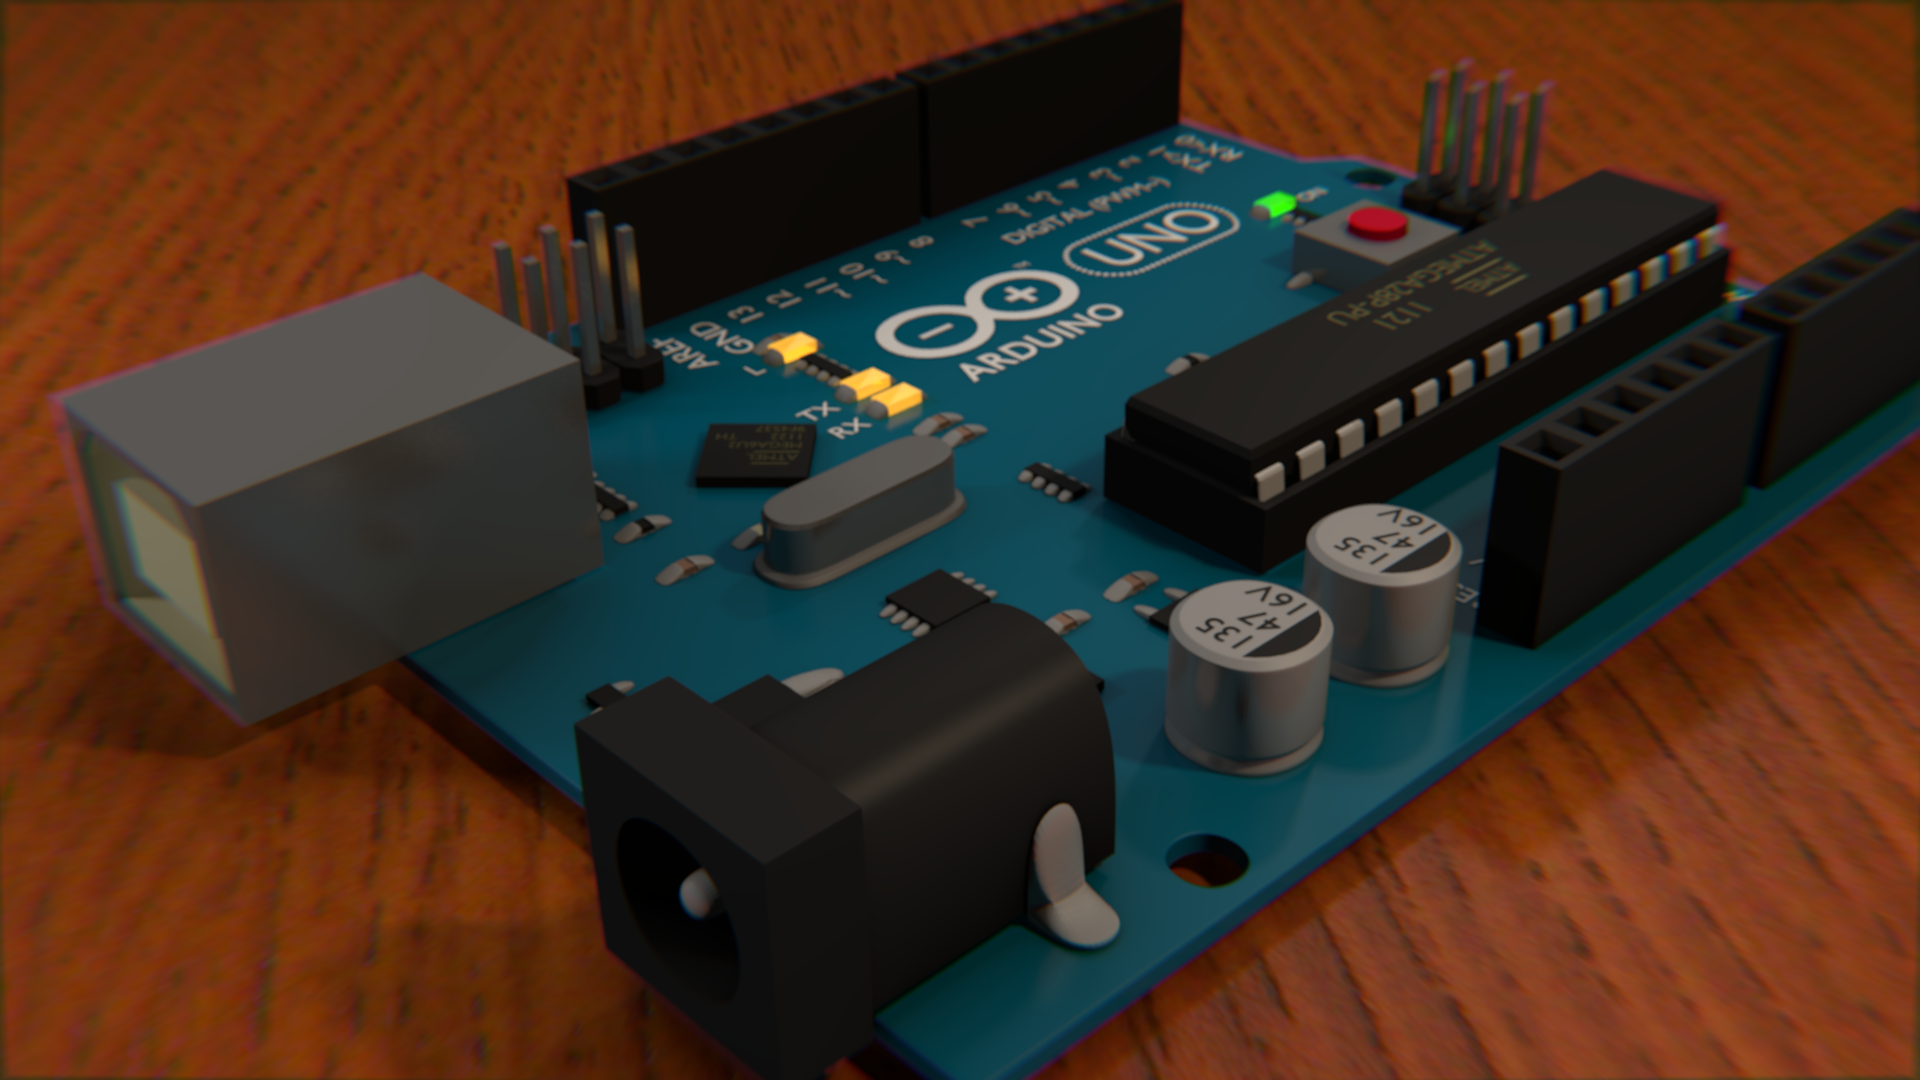 The finished Arduino Uno in Blender